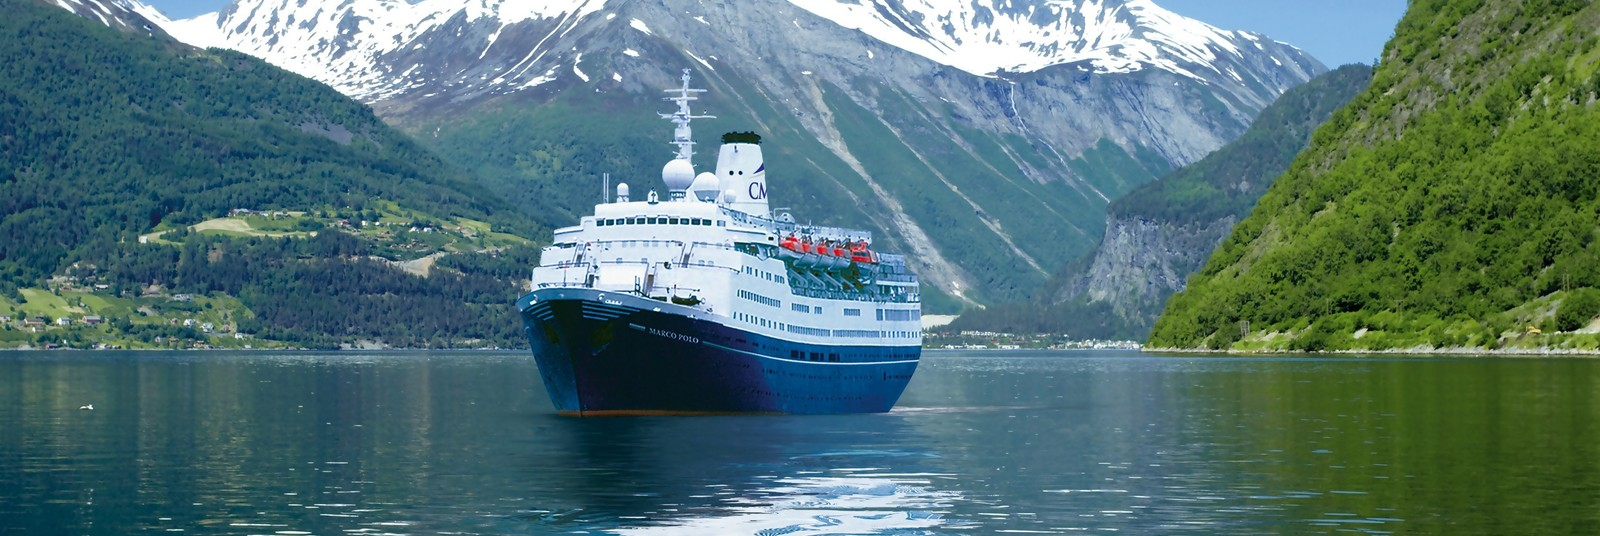 Homepage_large_marco_polo_cruise___maritime_norway